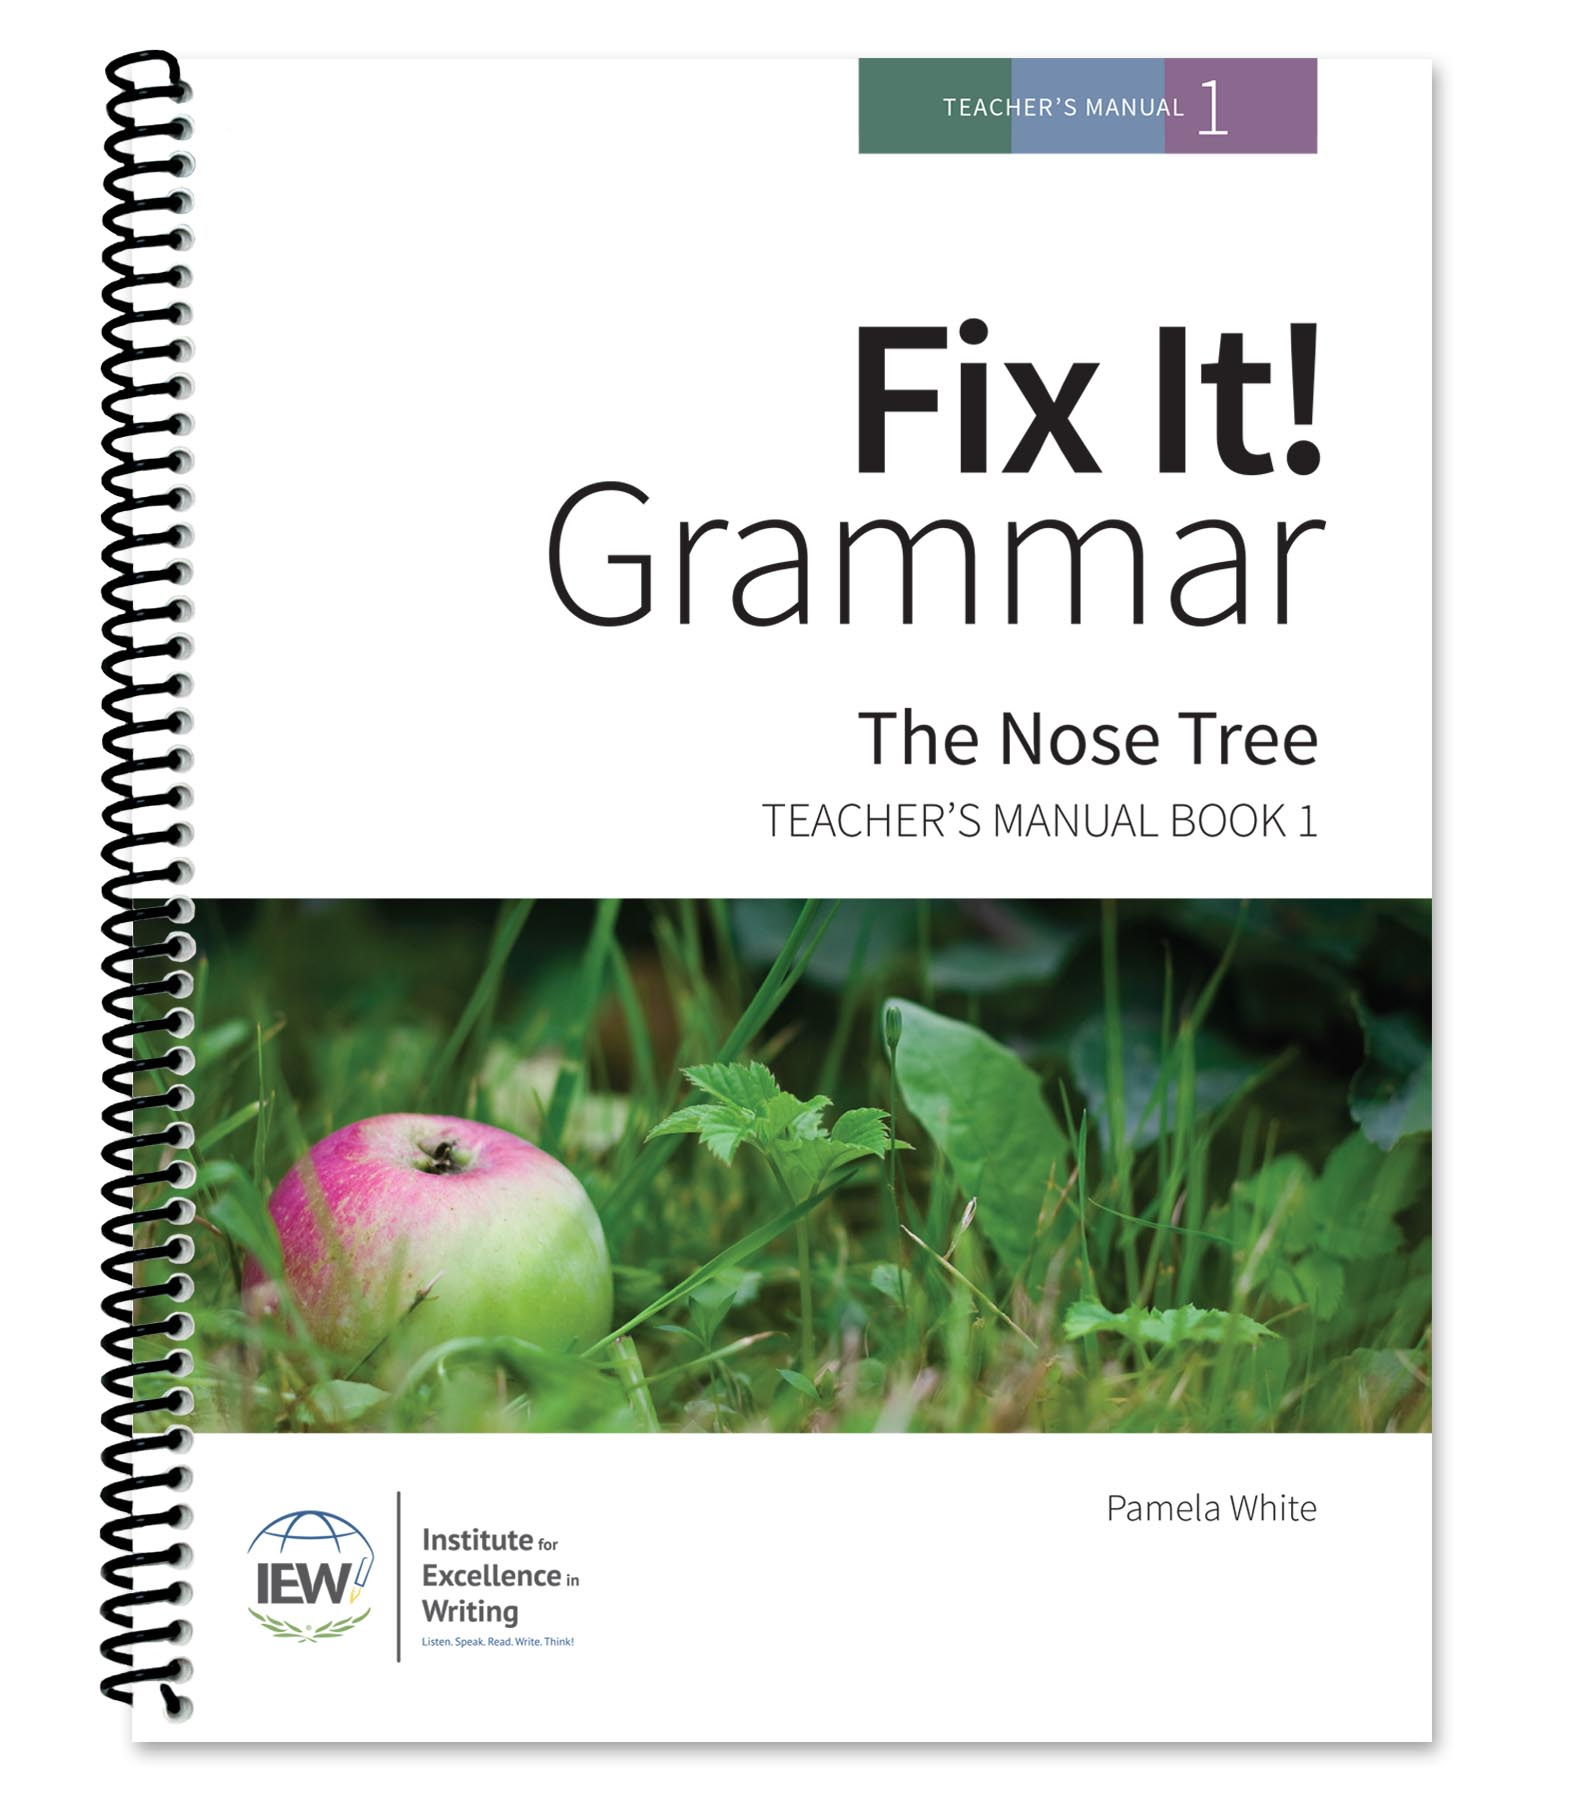 Fix It Grammar Institute For Excellence In Writing